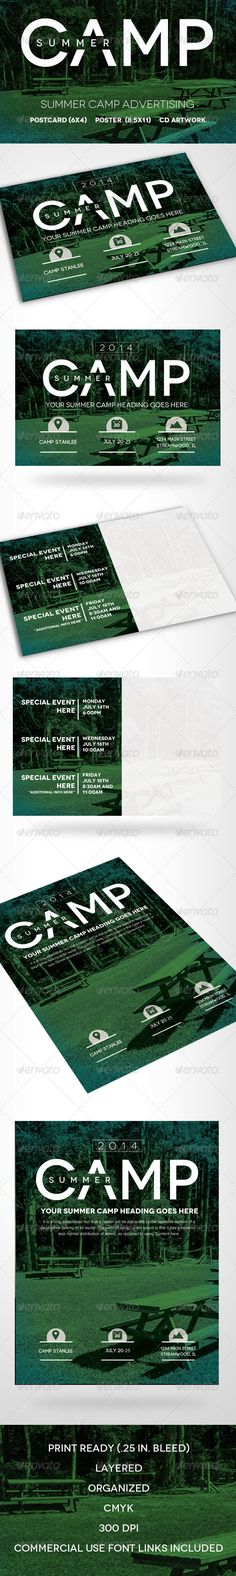 Summer Camp Flyer Template Ai Illustrator. Download Here: Https